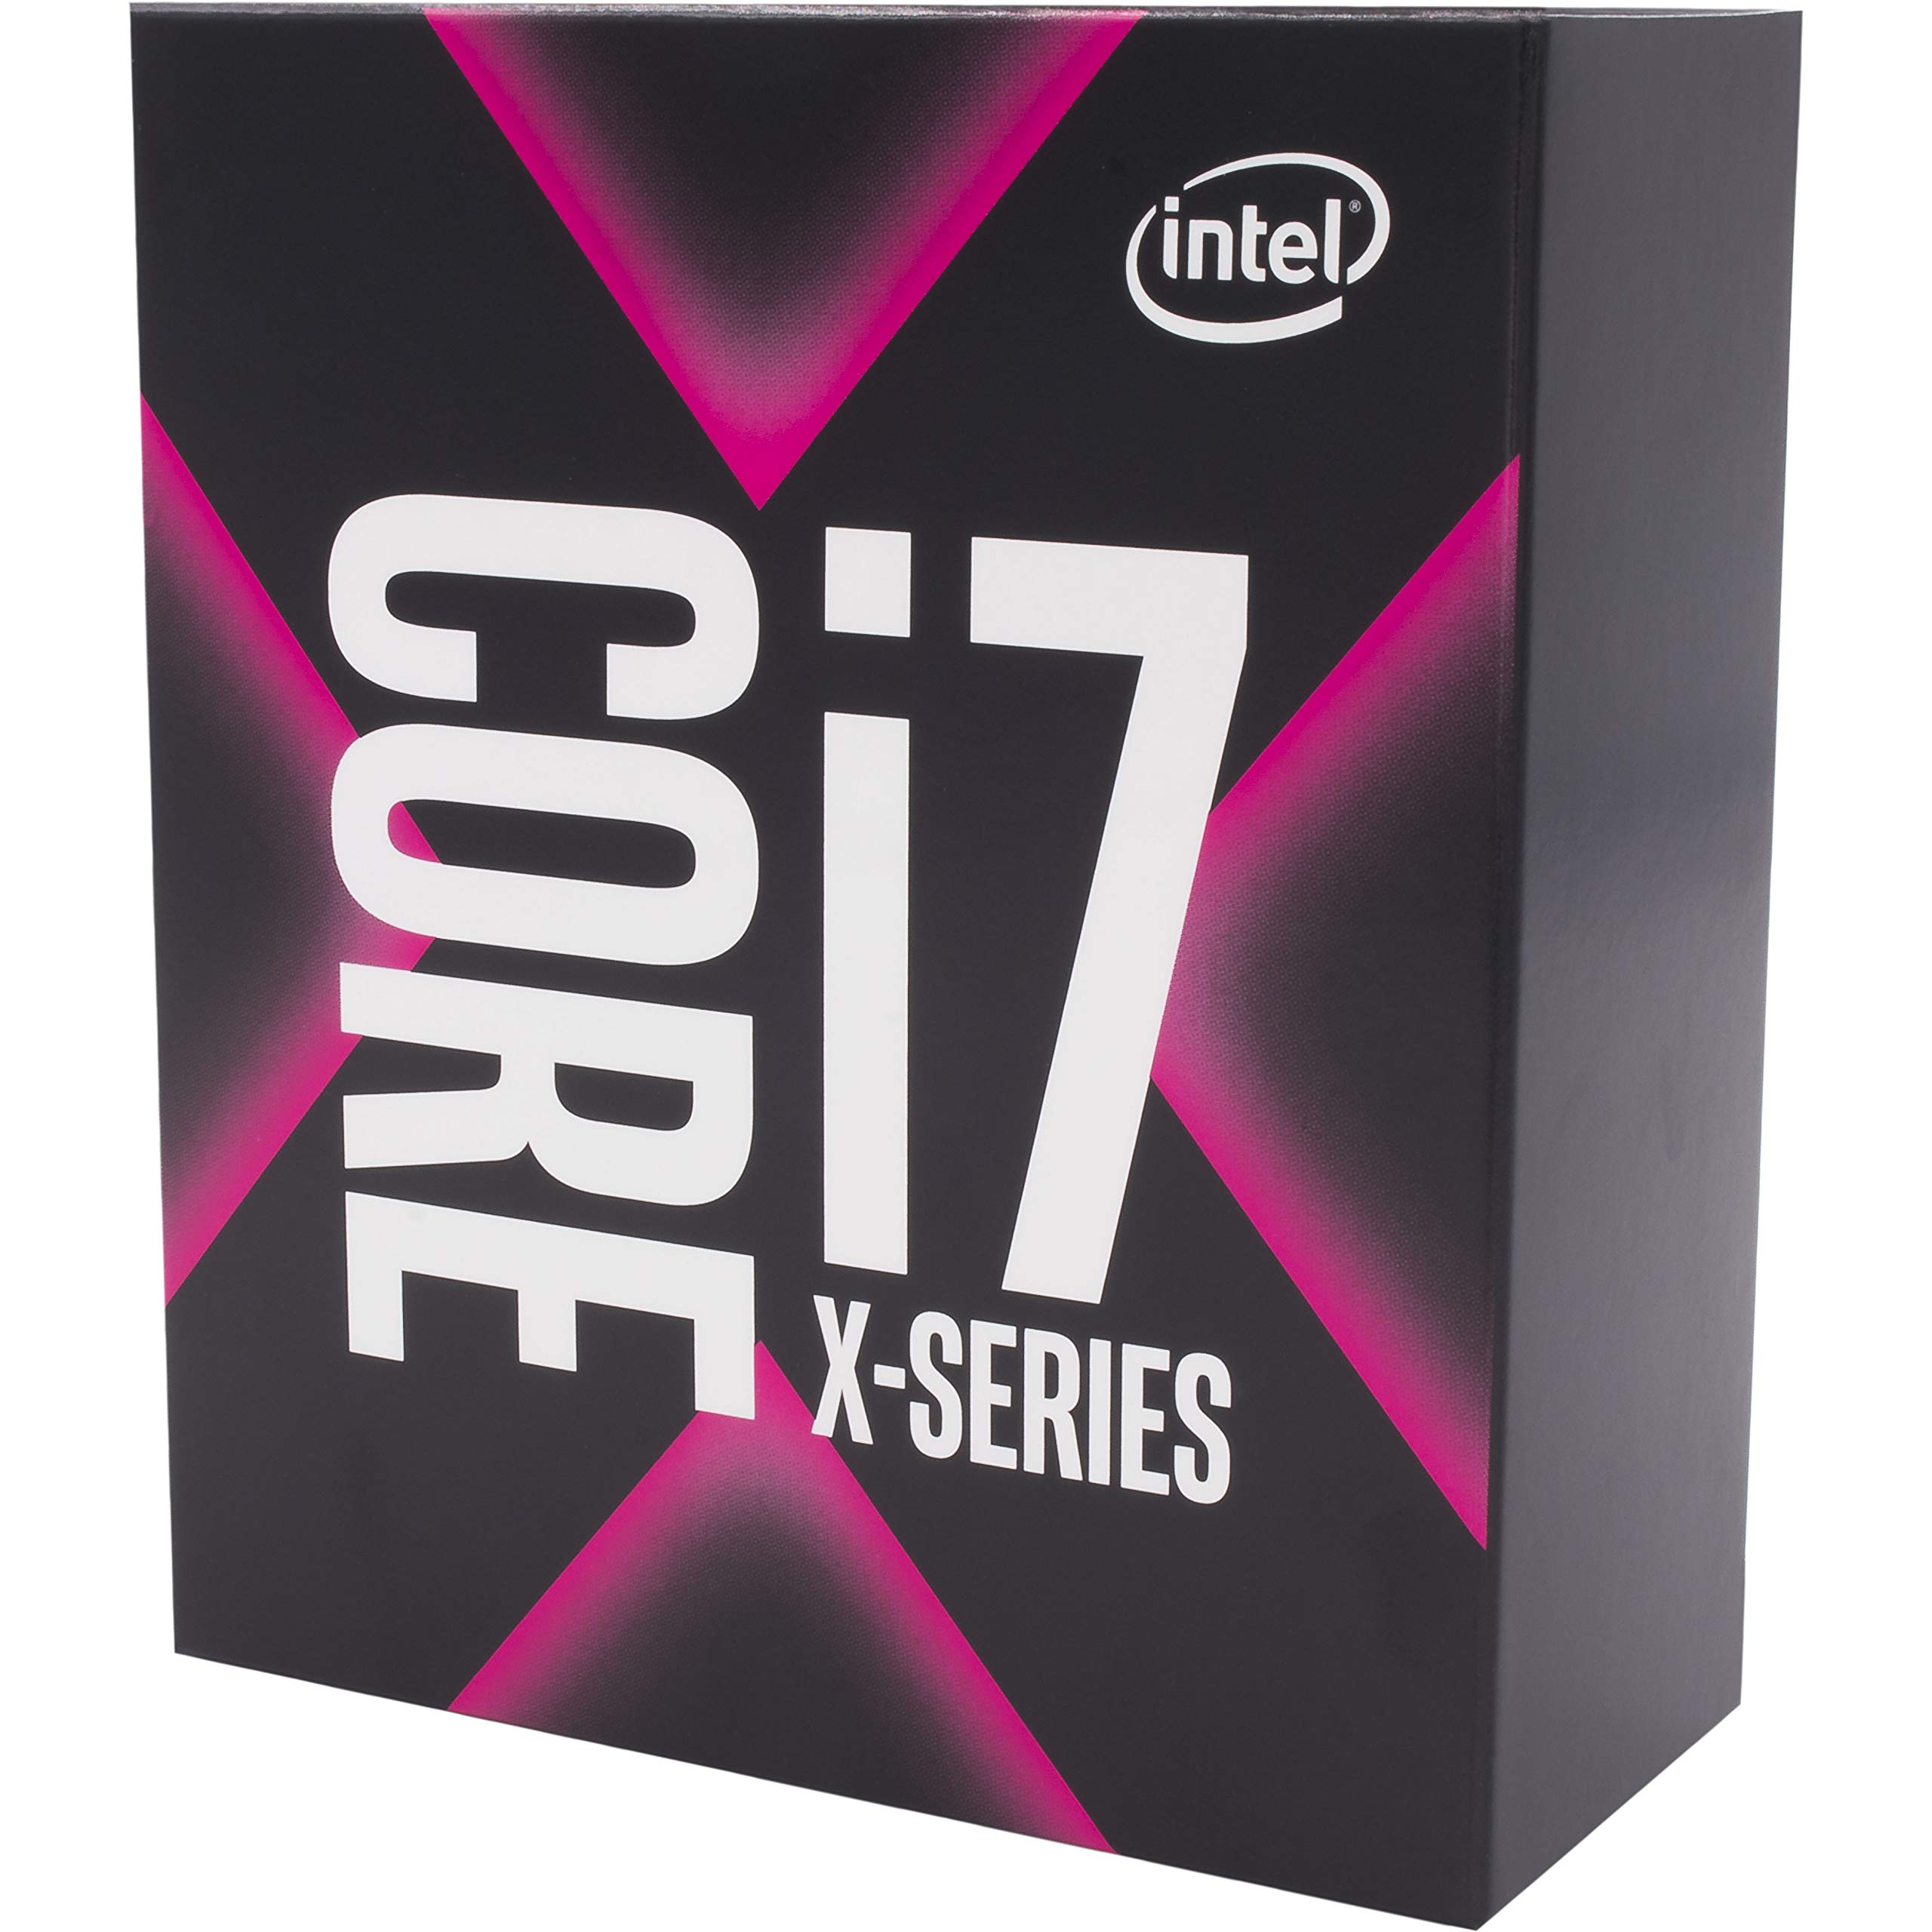 Intel Core i7-9800X X-Series Processor 8 Cores up to 4.4GHz Turbo Unlocked LGA2066 X299 Series 165W Processors (999AC3) by Intel